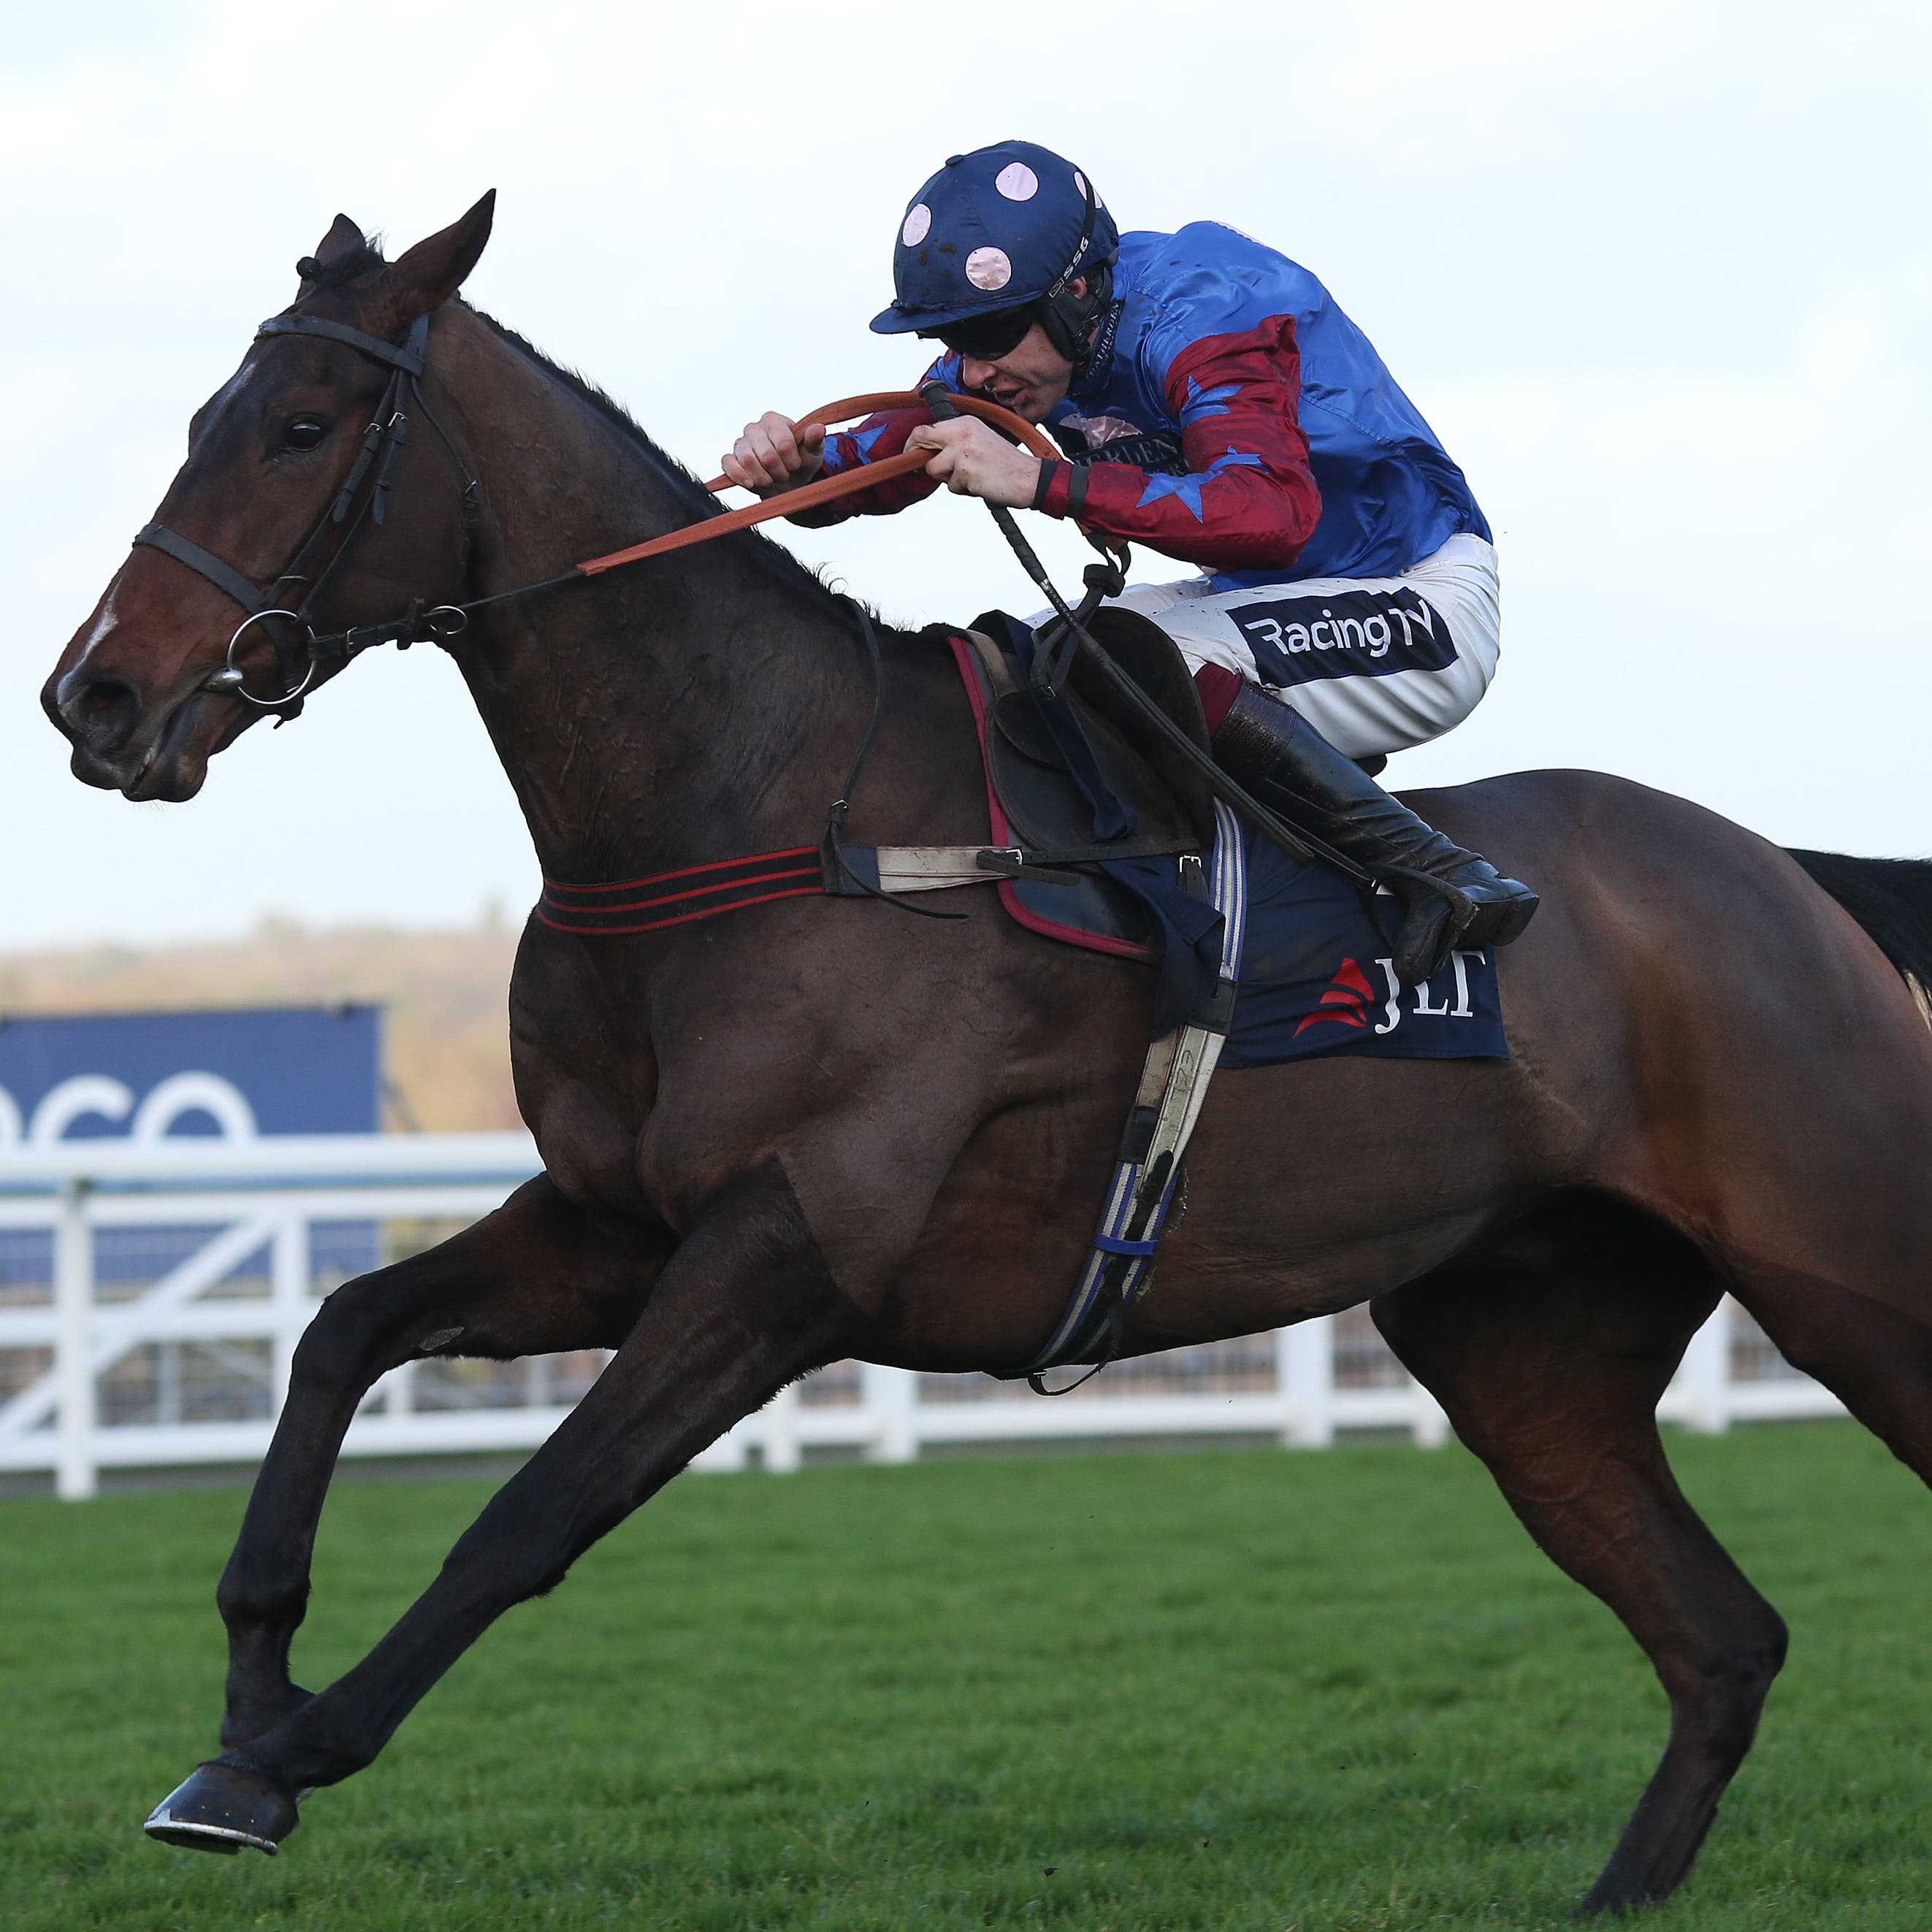 Paisley Park bounds to victory in the JLT Hurdle at Ascot